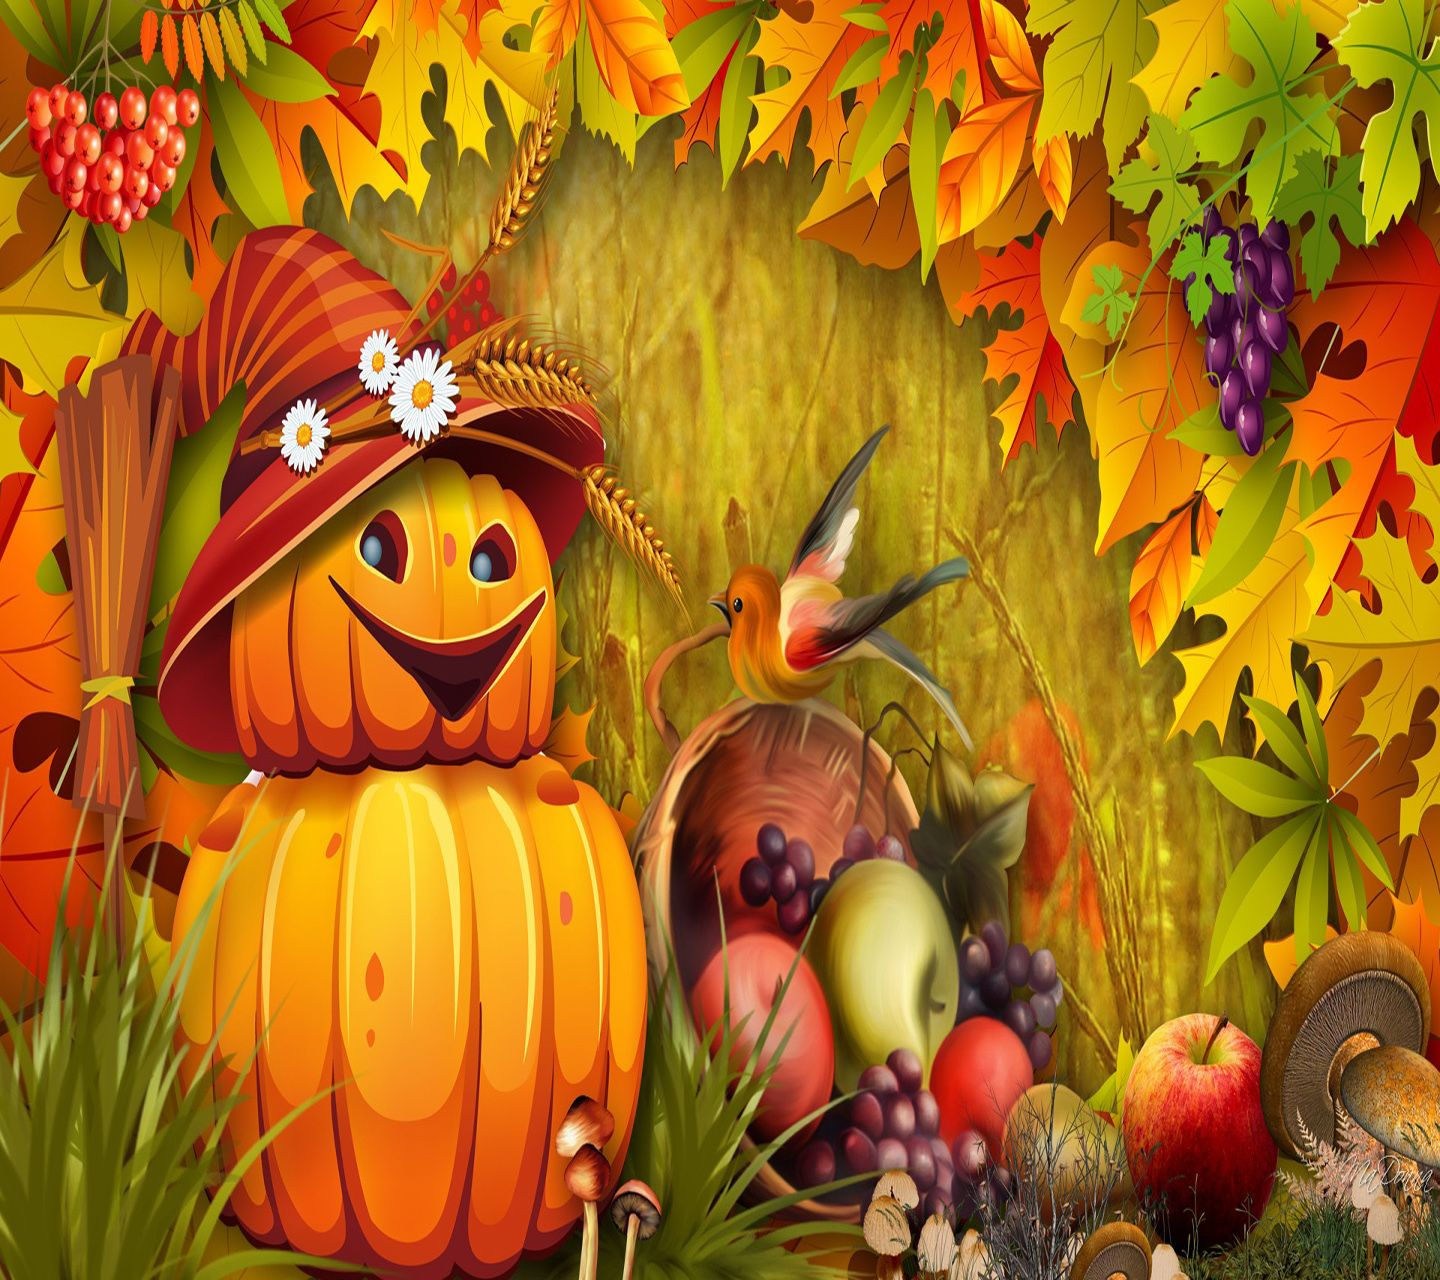 Fall Scenes Wallpaper With Pumpkins 1440x1280 Mobile Phone Wallpapers Download 23